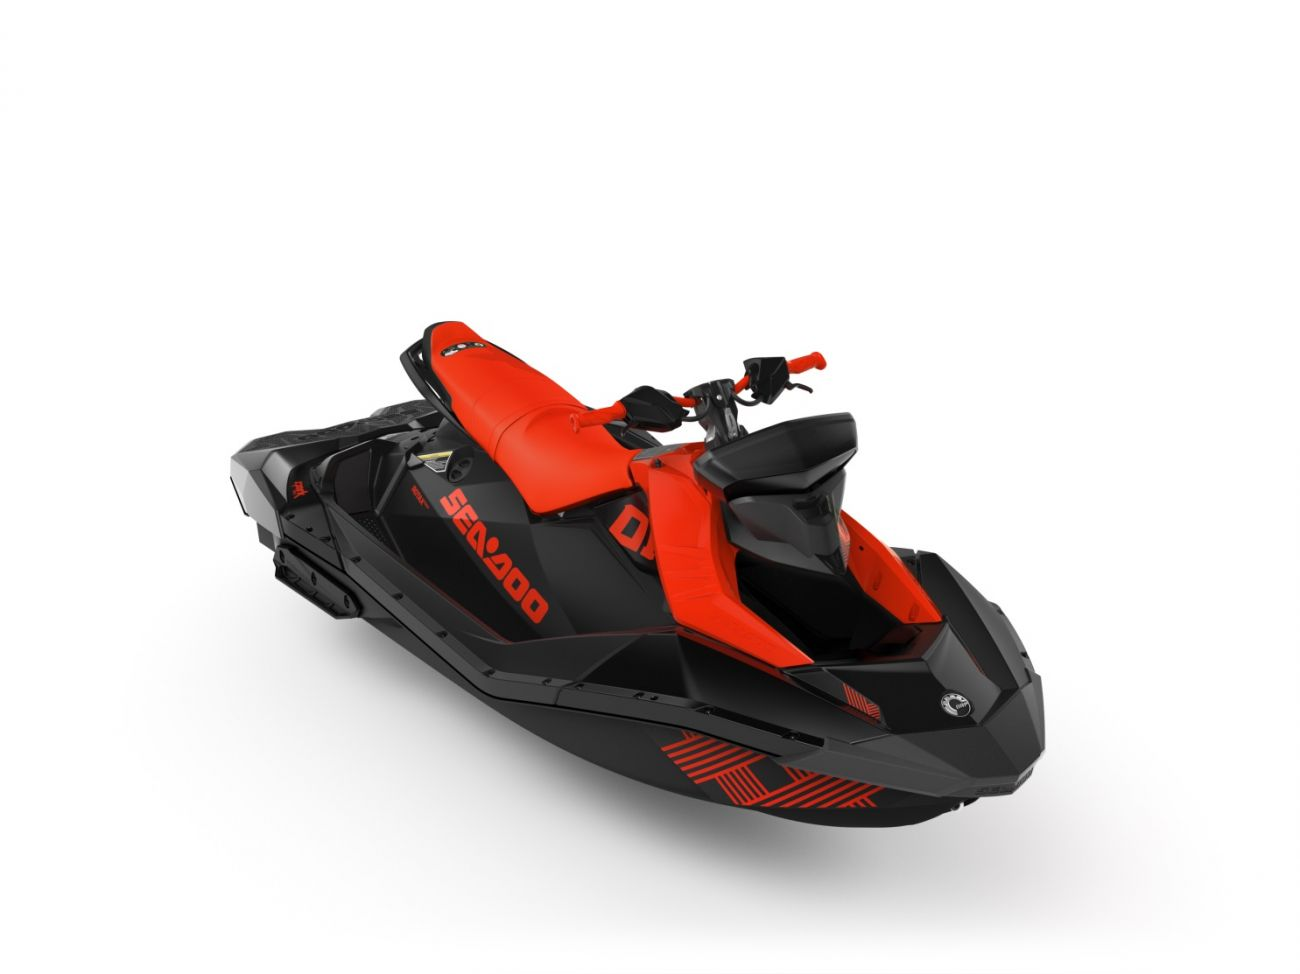 WATERSPORTS SEA-DOO_IMAGERY REC_LITE MY21 SEA_MY21_RECLT_Spark_Trixx_90__180920142233_lowres